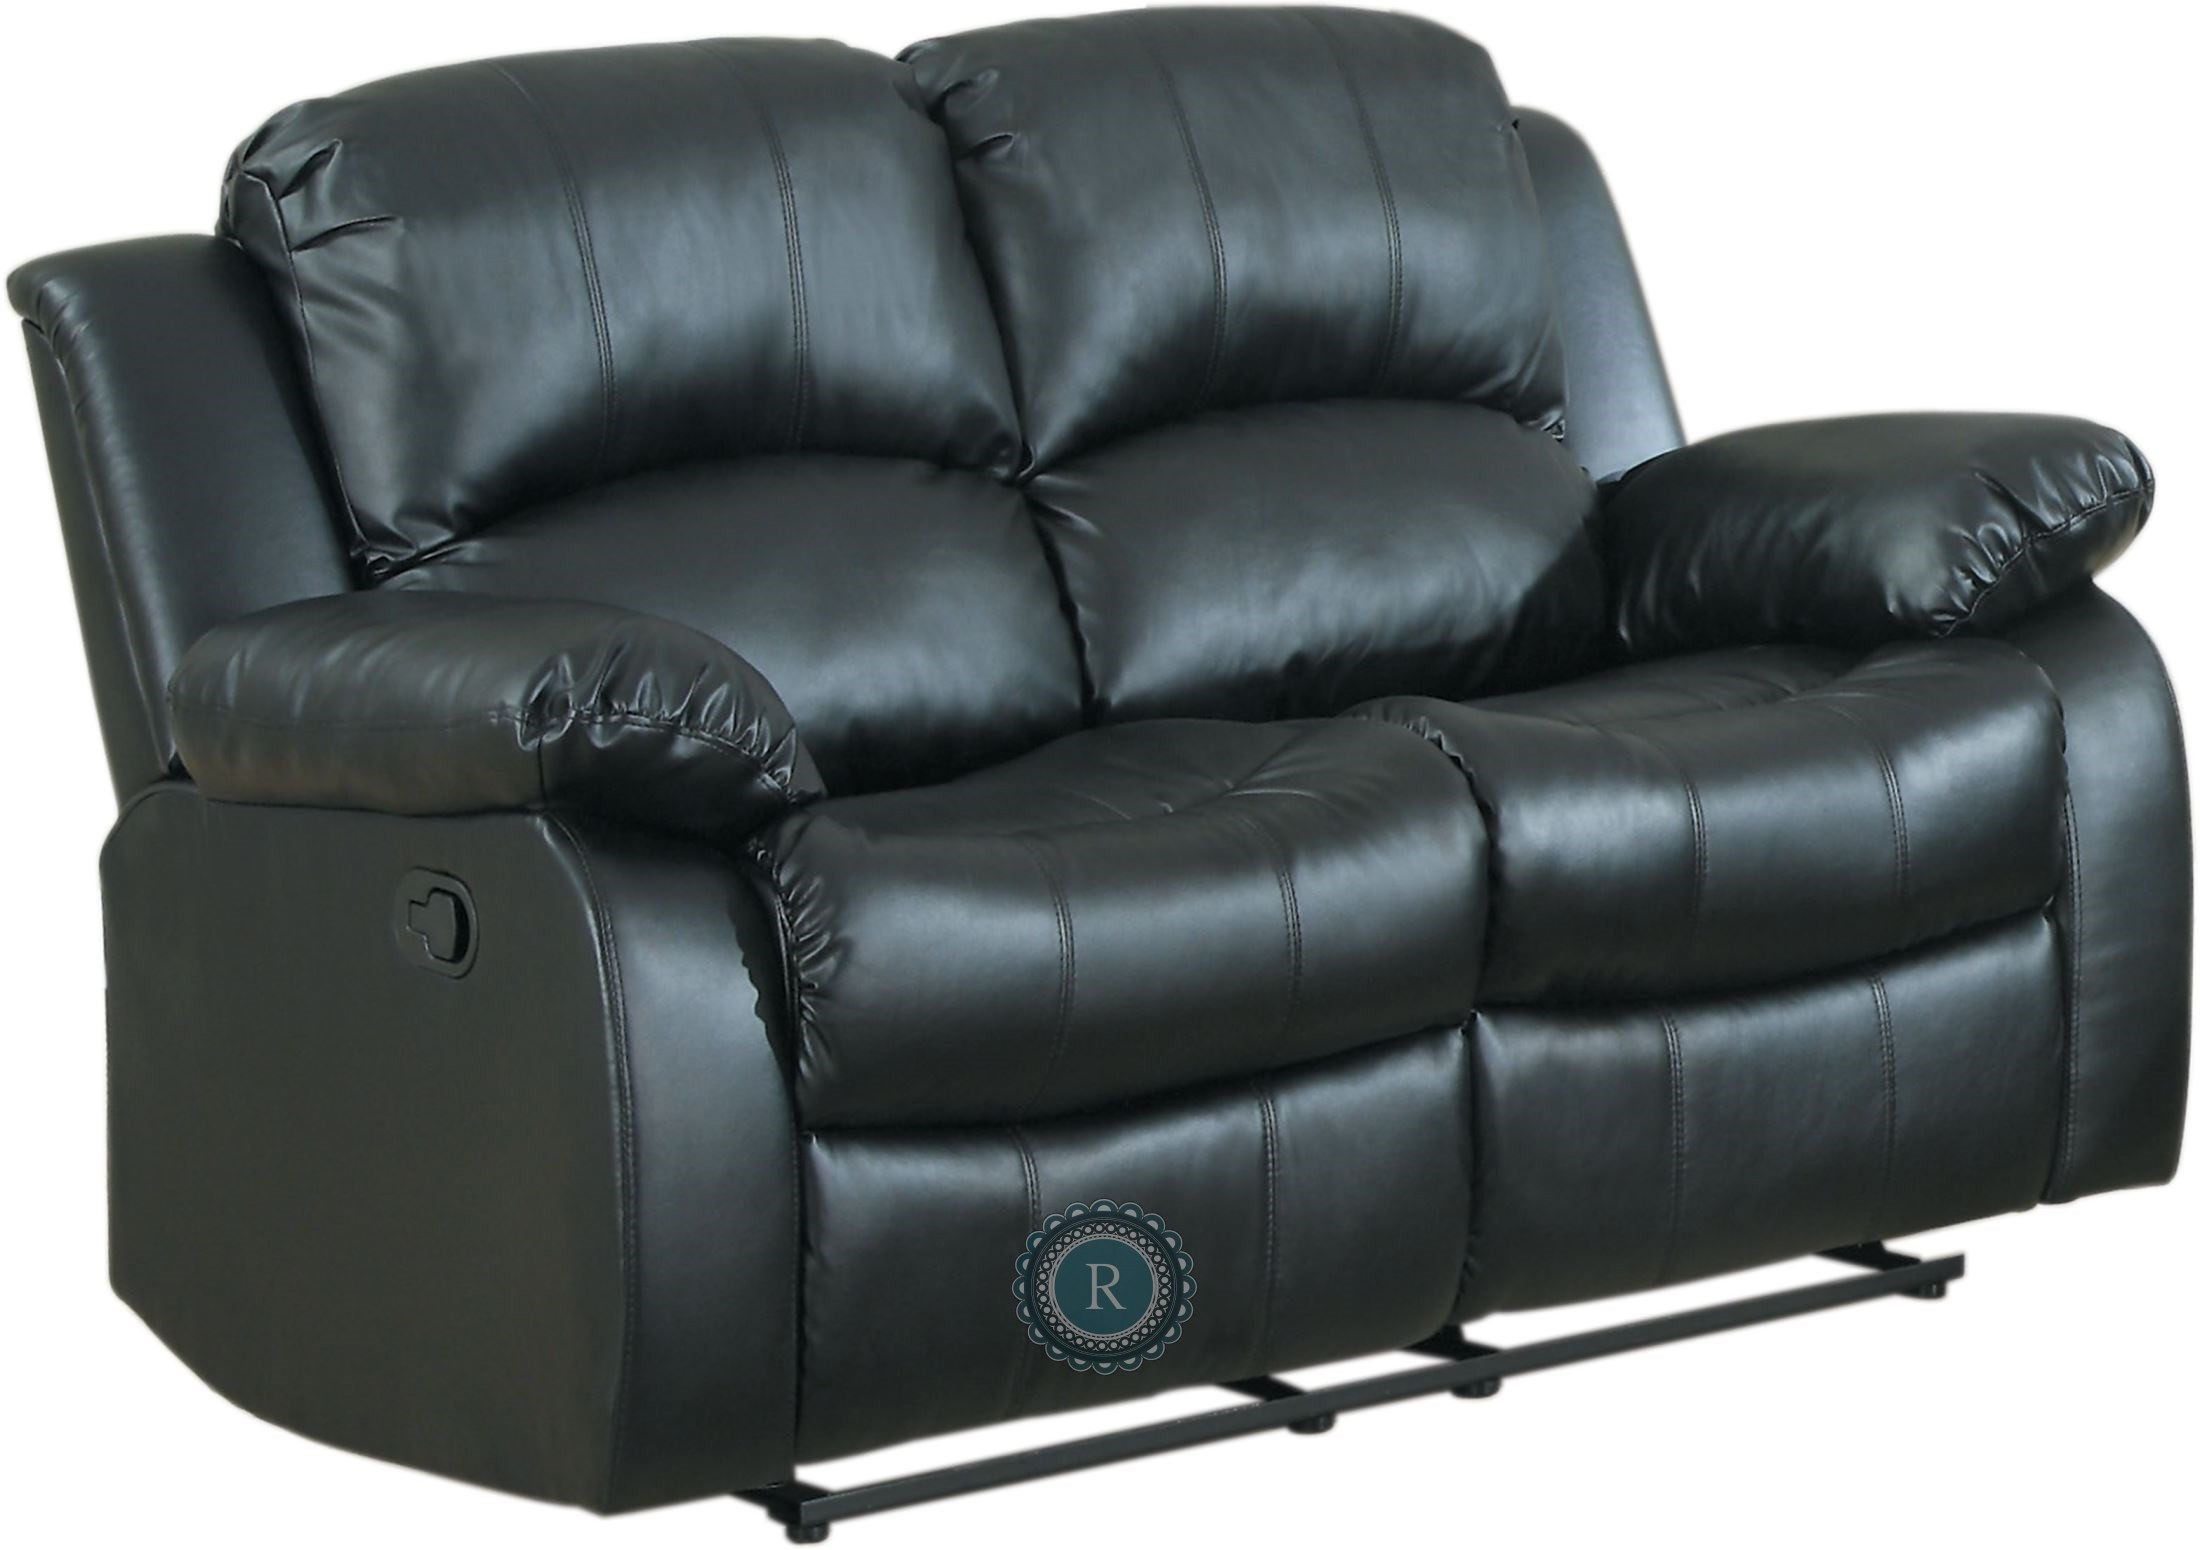 Cranley Black Power Double Reclining Loveseat From